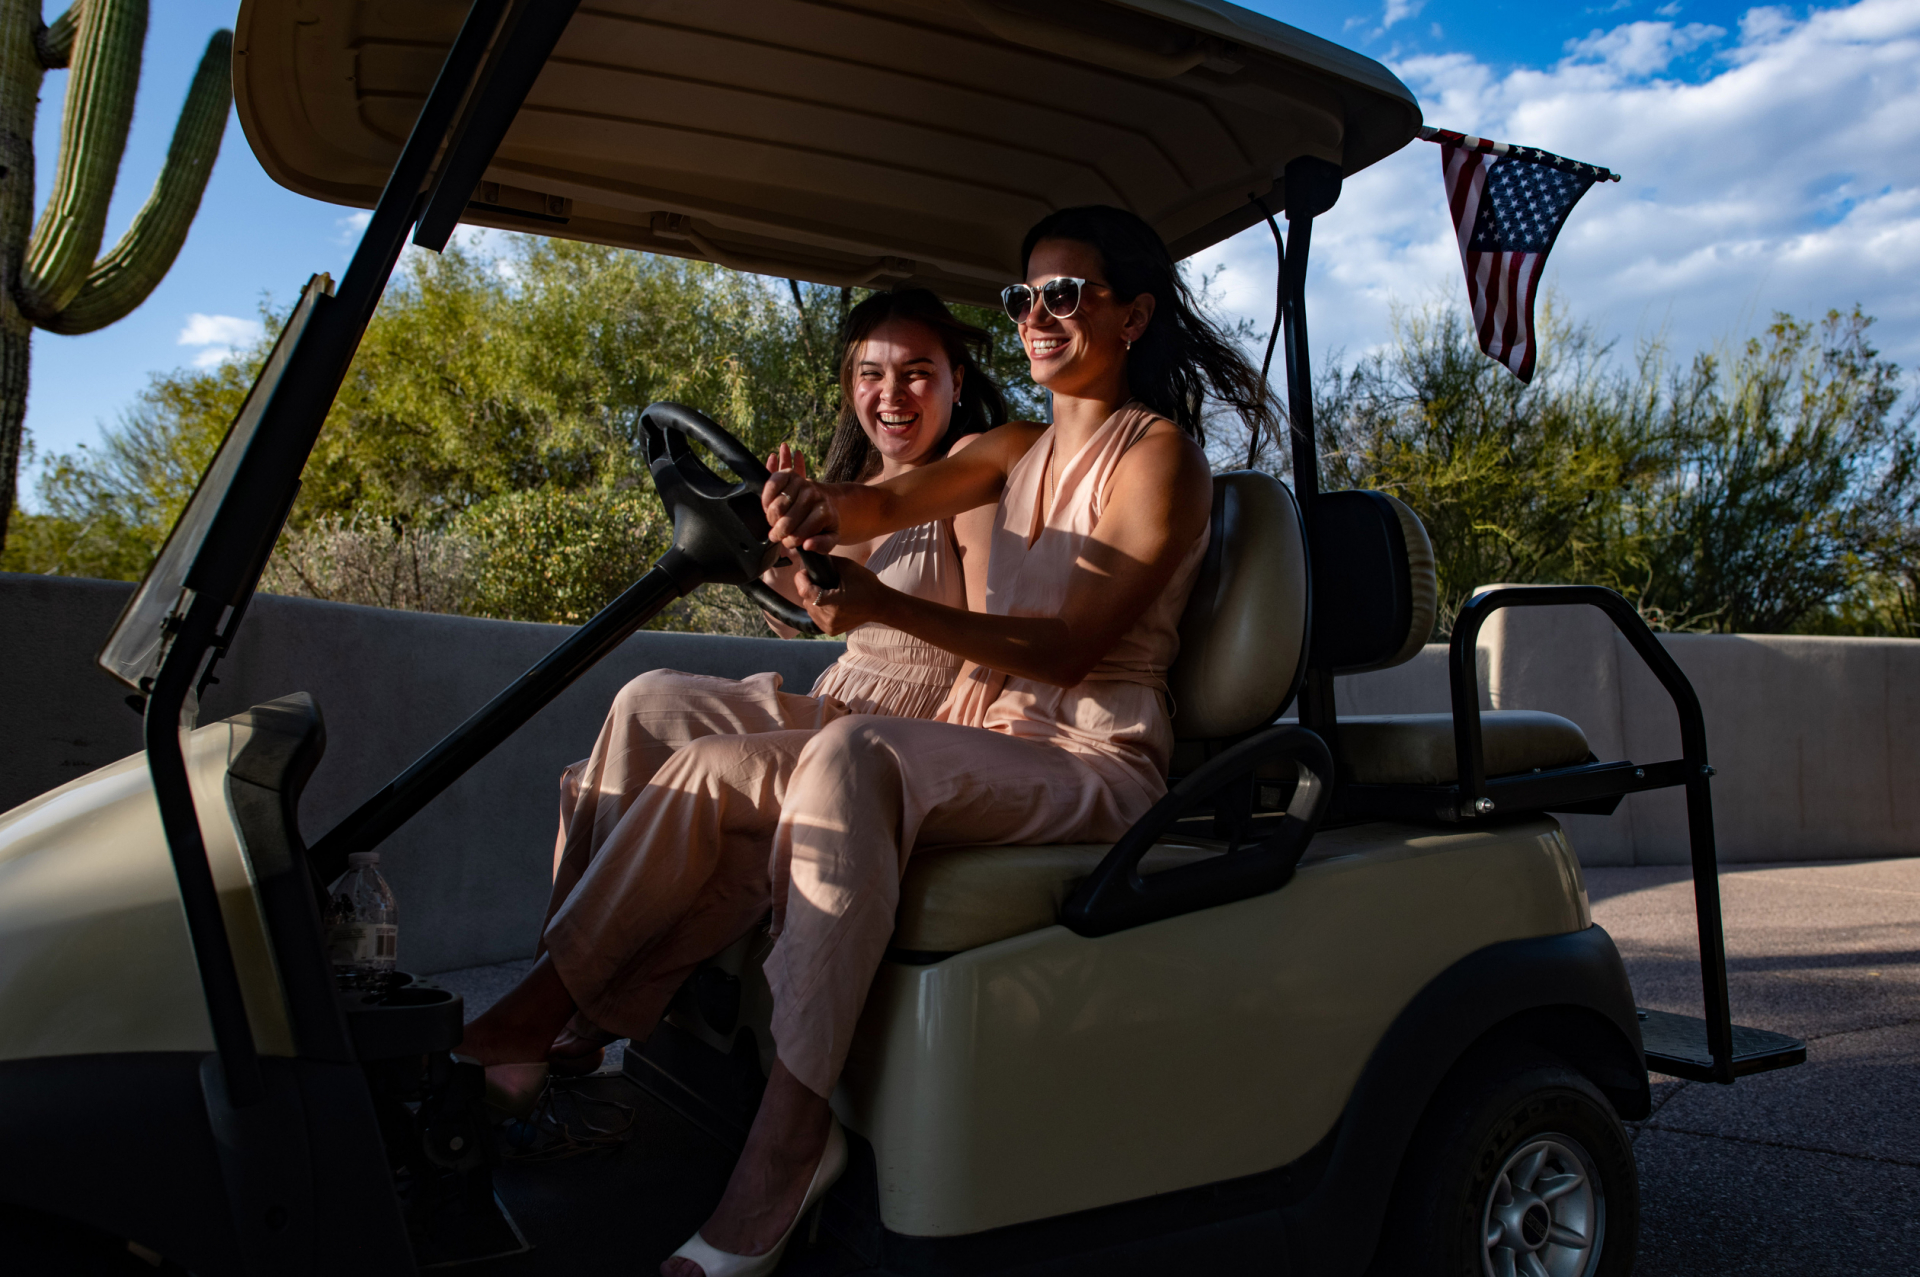 Outdoor Wedding Pic - Boulders Resort & Spa, AZ | family members filled with joy and a sense of adventure